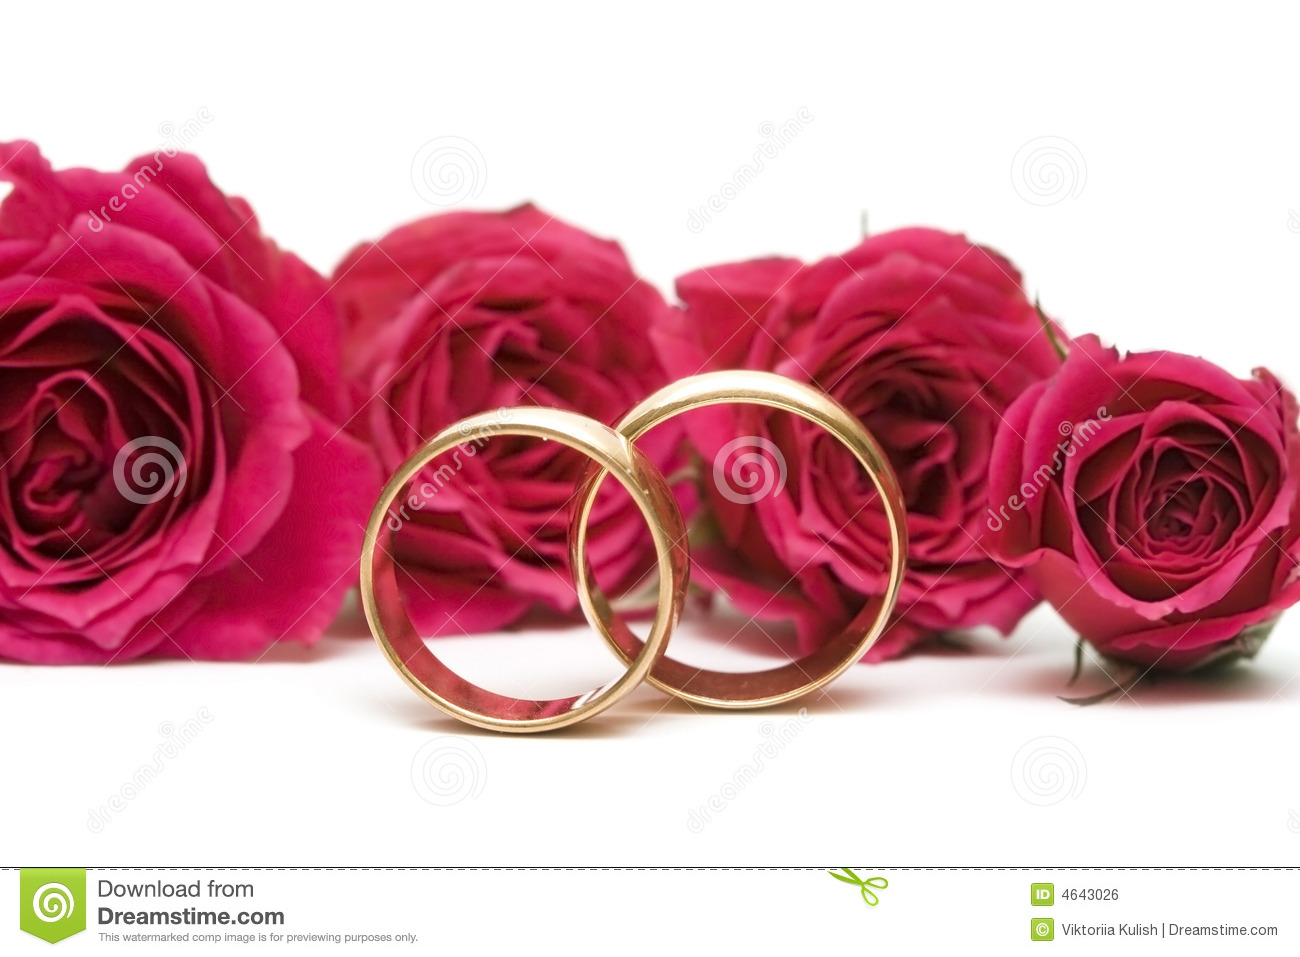 Wedding rings flowers  Wedding Rings With Flowers Royalty Free Stock Image - Image: 4643026